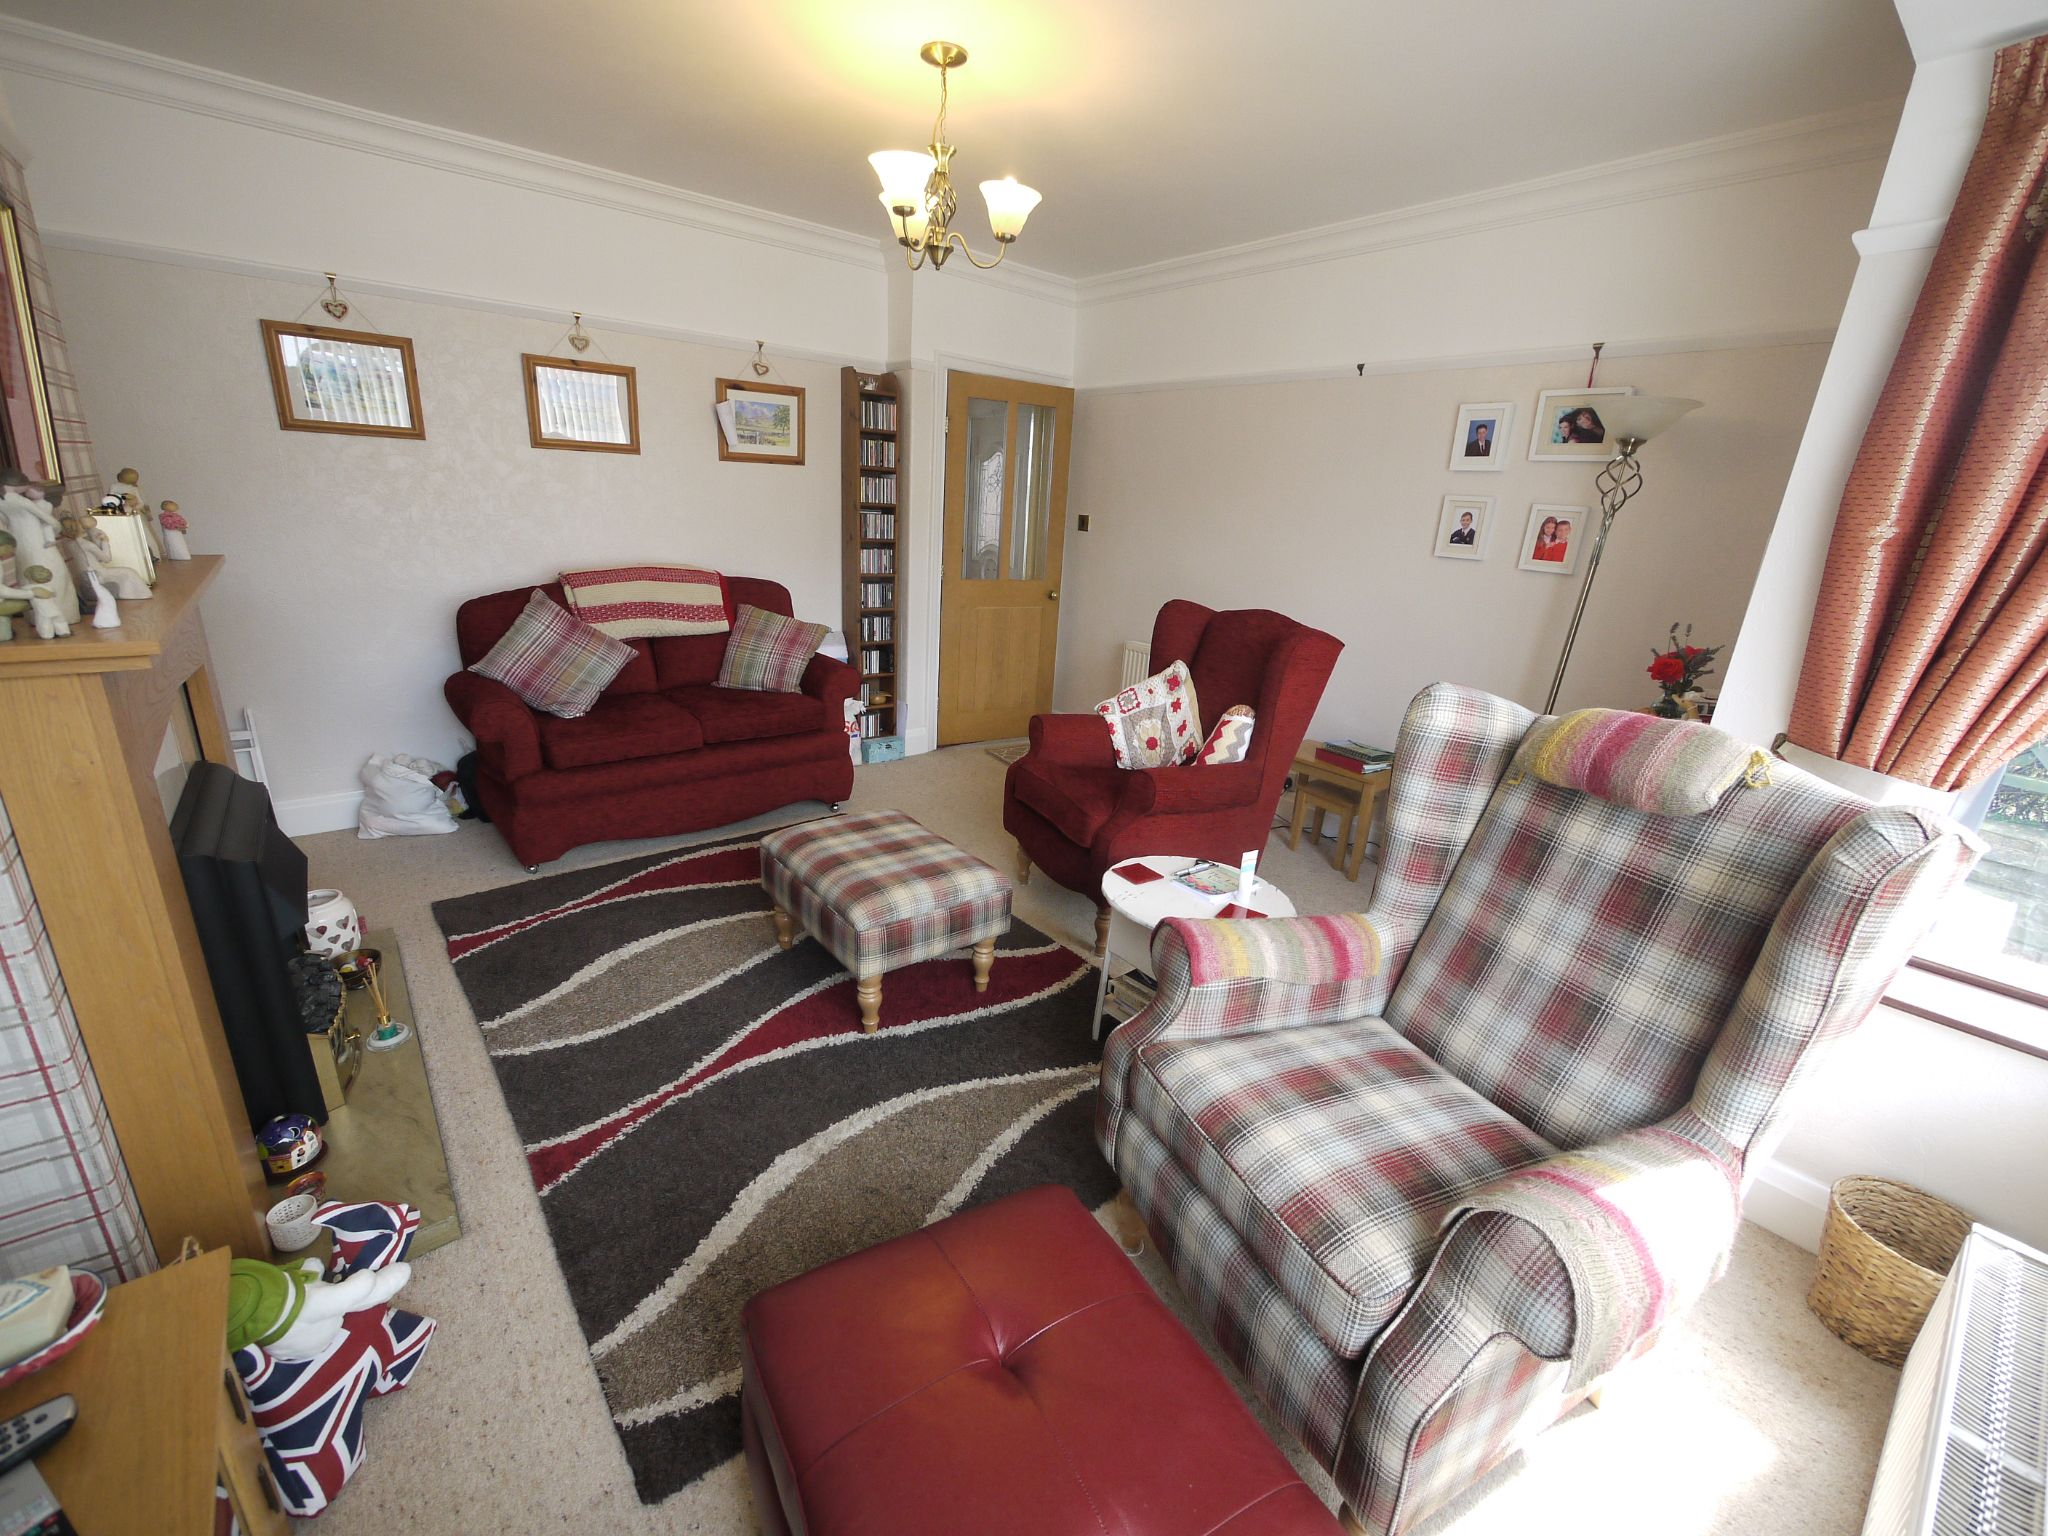 3 bedroom semi-detached house SSTC in Calderdale - Photograph 11.